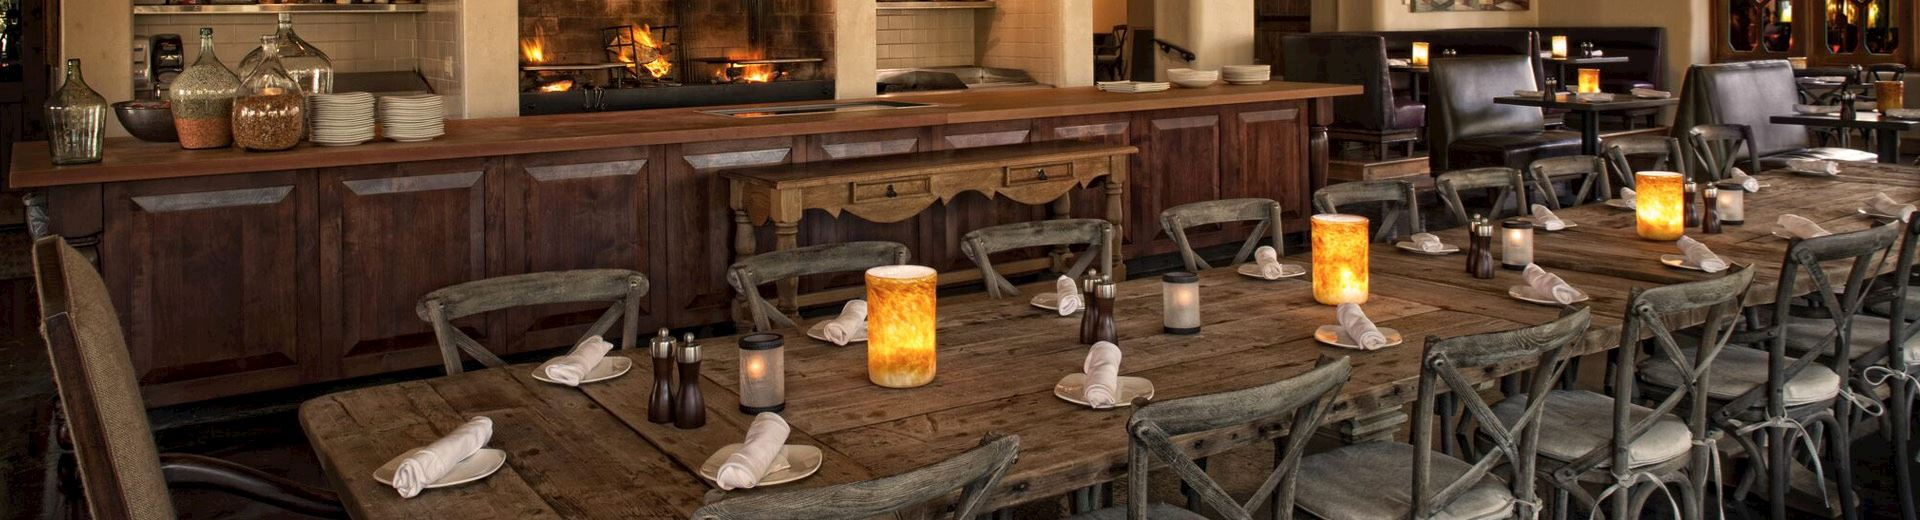 Dining Packages The Wigwam Resort, Arizona